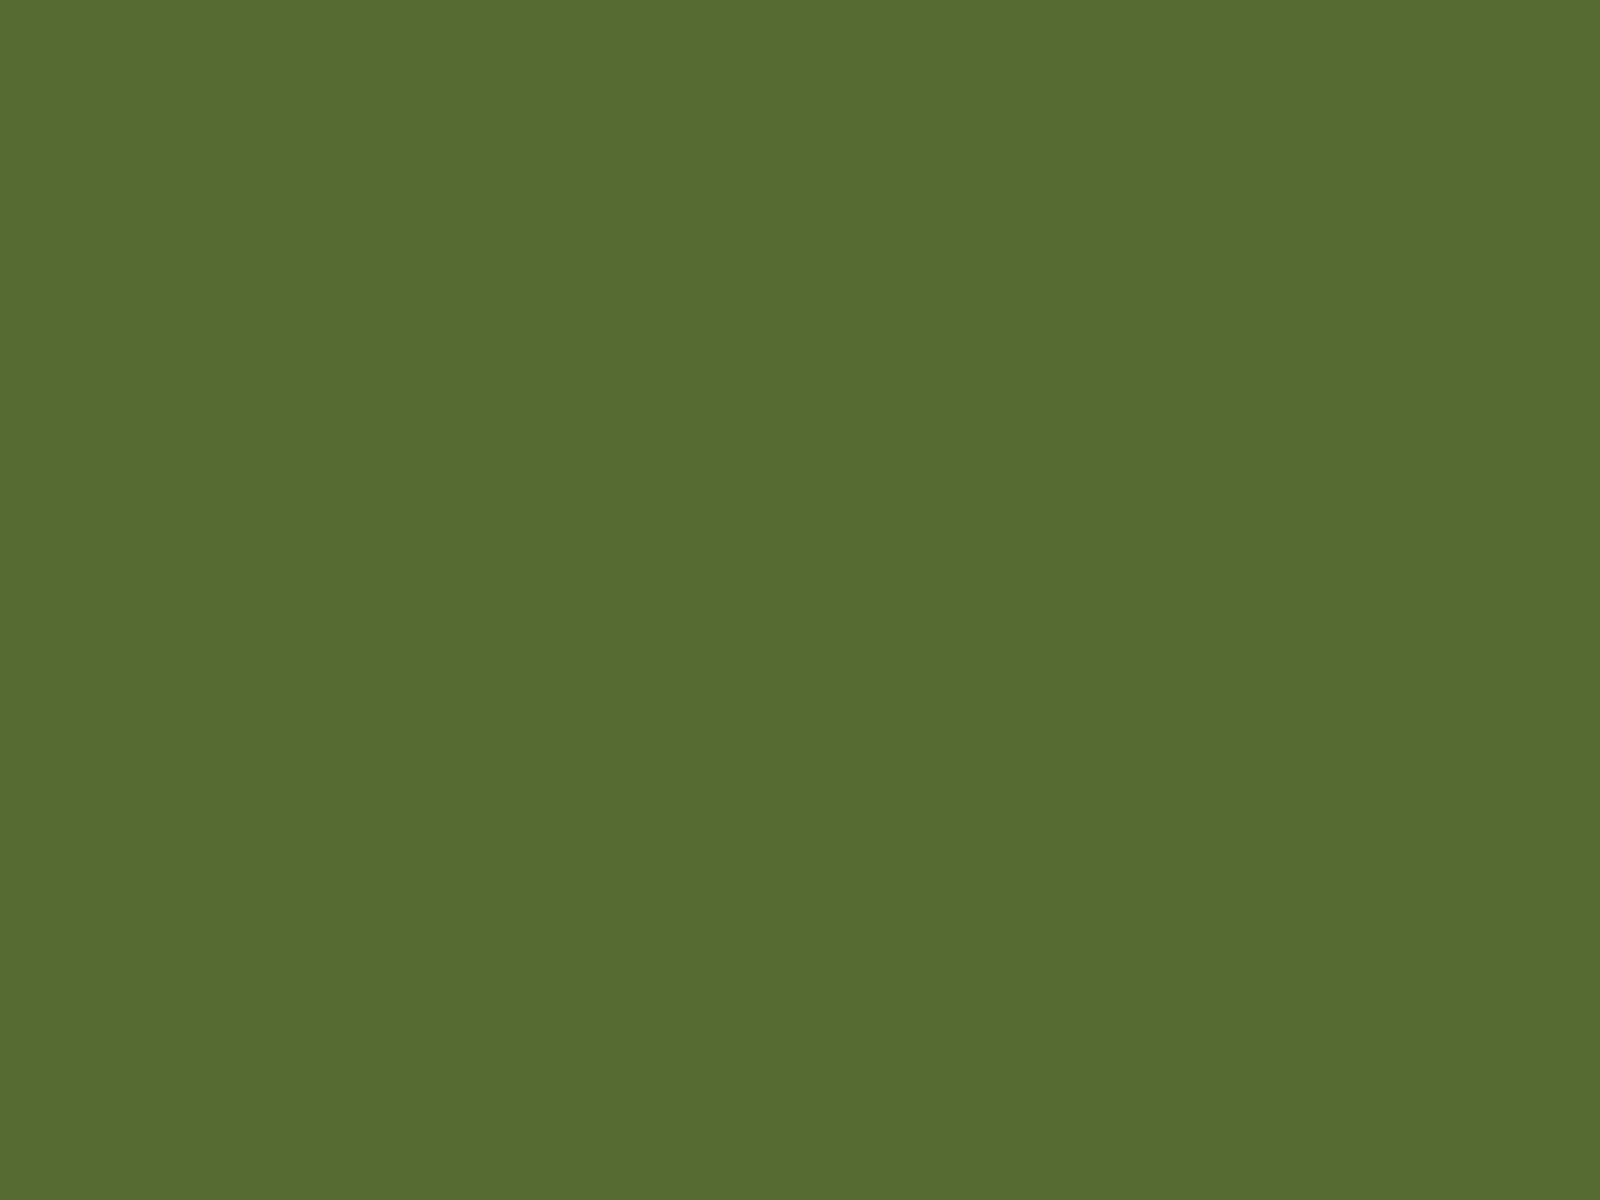 1600x1200 Dark Olive Green Solid Color Background